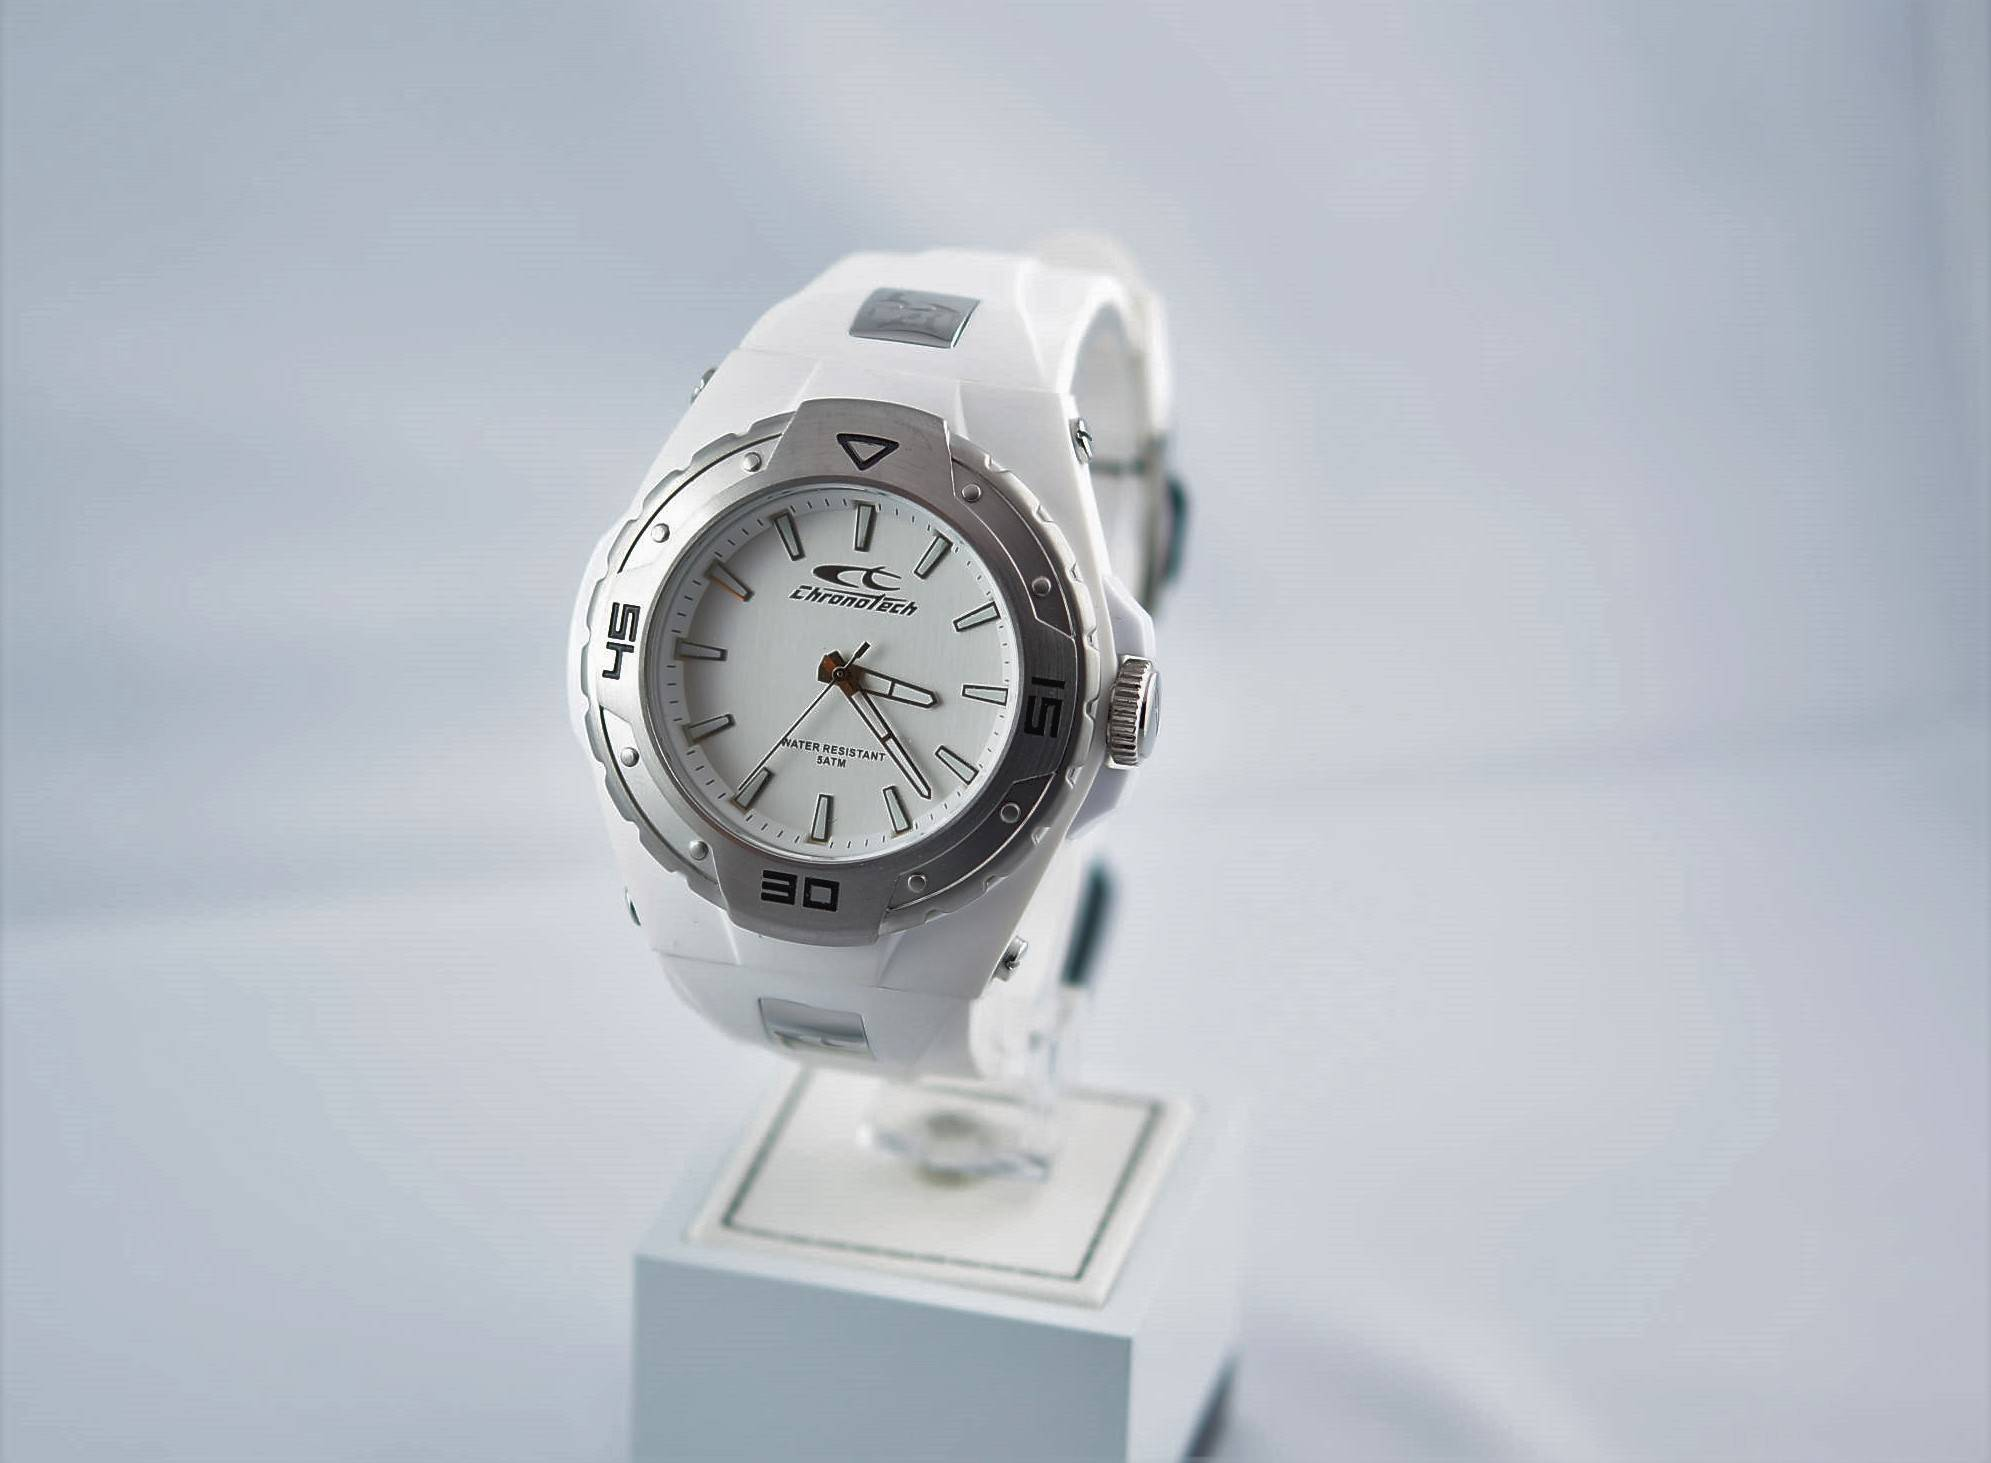 OROLOGIO CHRONOTECH WATER RESISTANT 5 ATM.